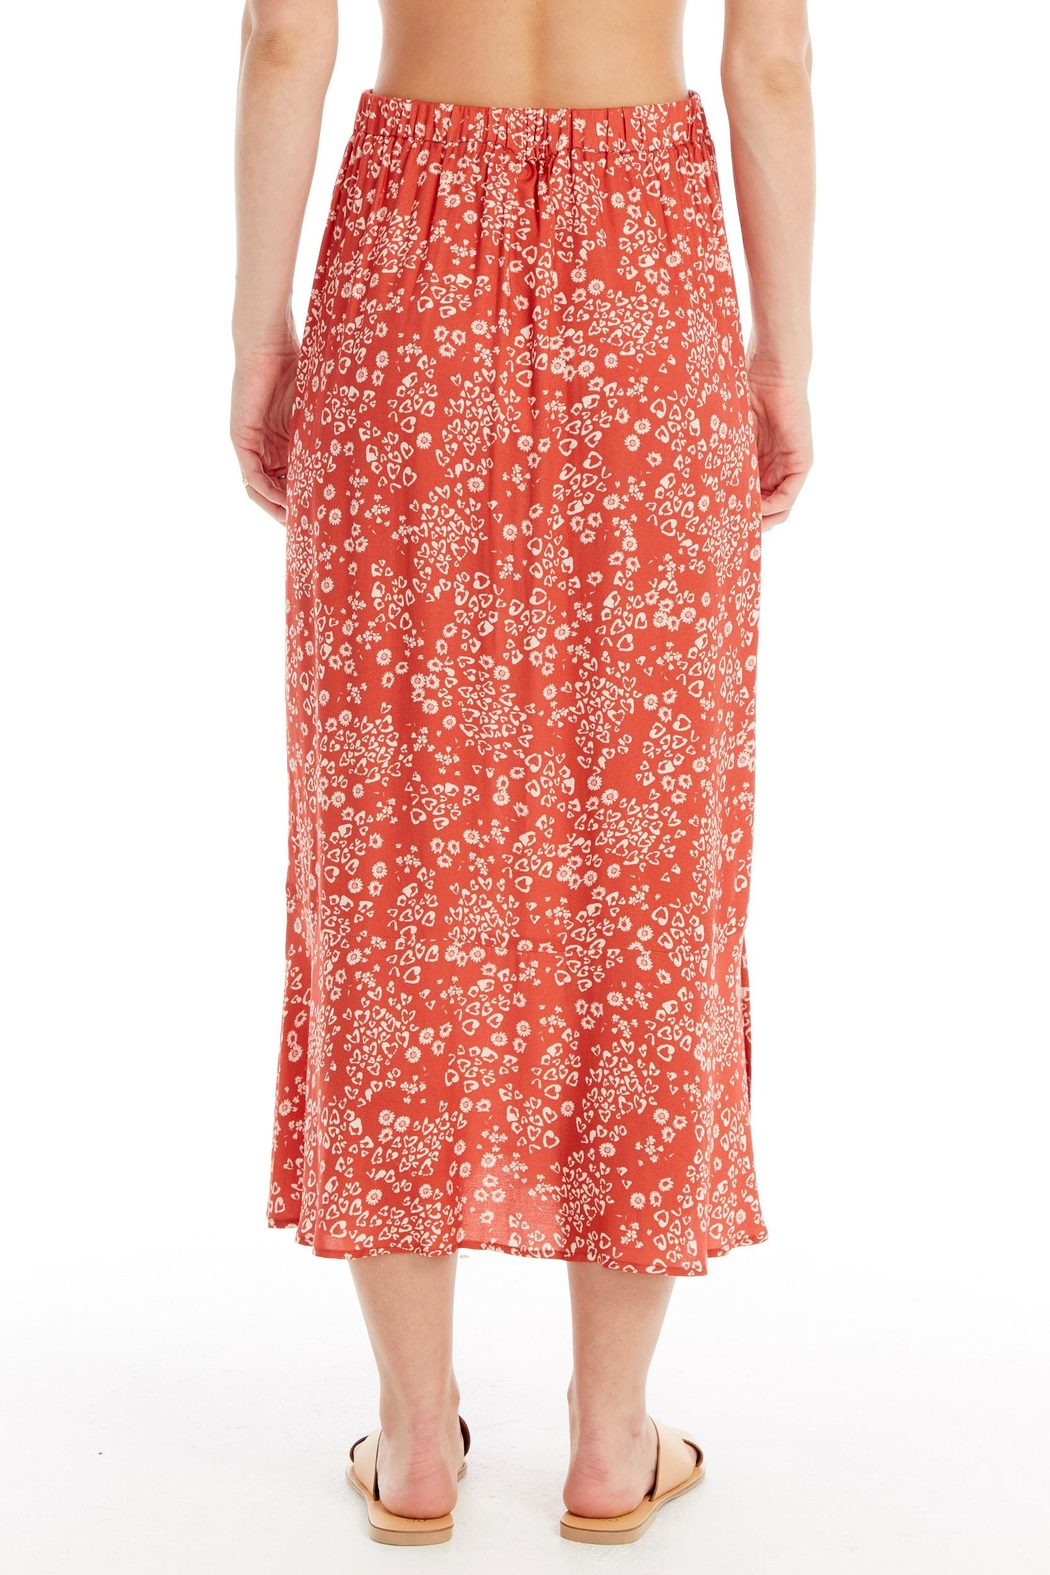 Saltwater Luxe Heart Cheetah Midi-Skirt - Side Cropped Image